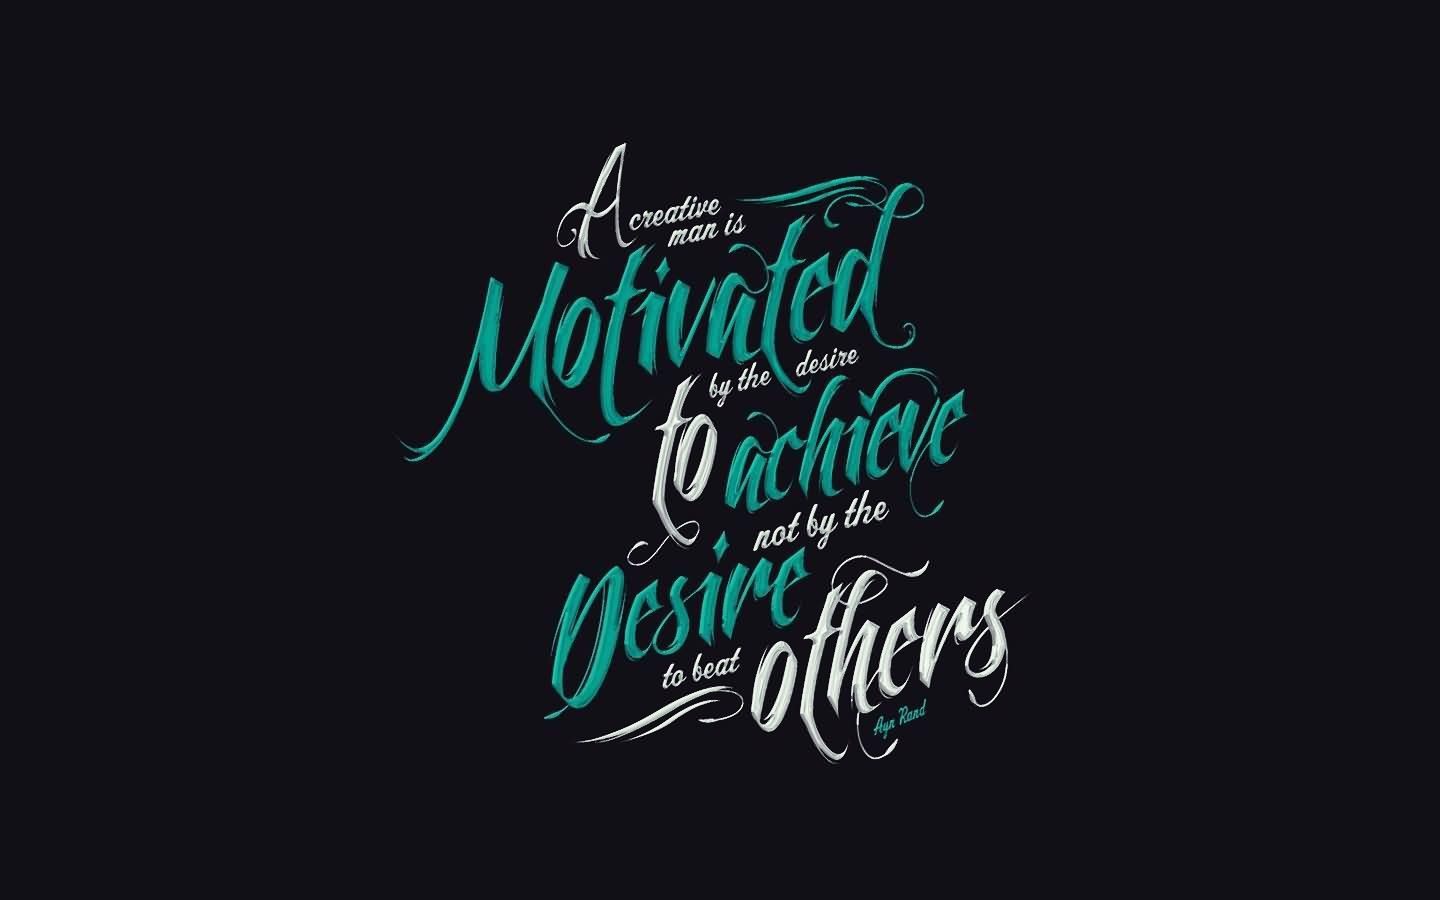 A Creative Man Is Motivated By The Desire To Achieve Not Beat Others Ayn Rand